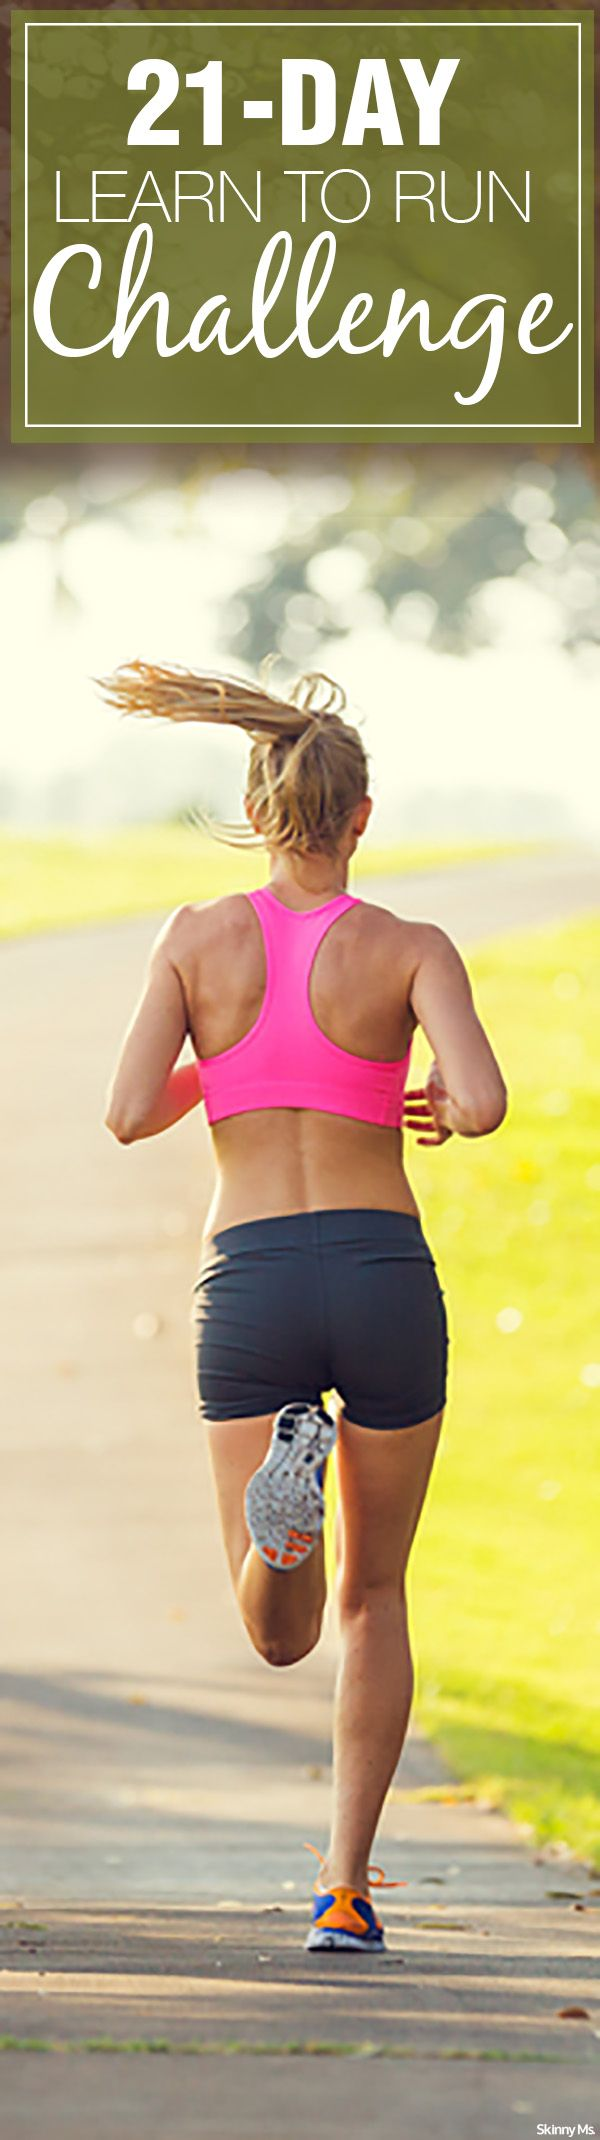 Getting back into my running: 21-Day Learn to Run Challenge #runningchallenge #running